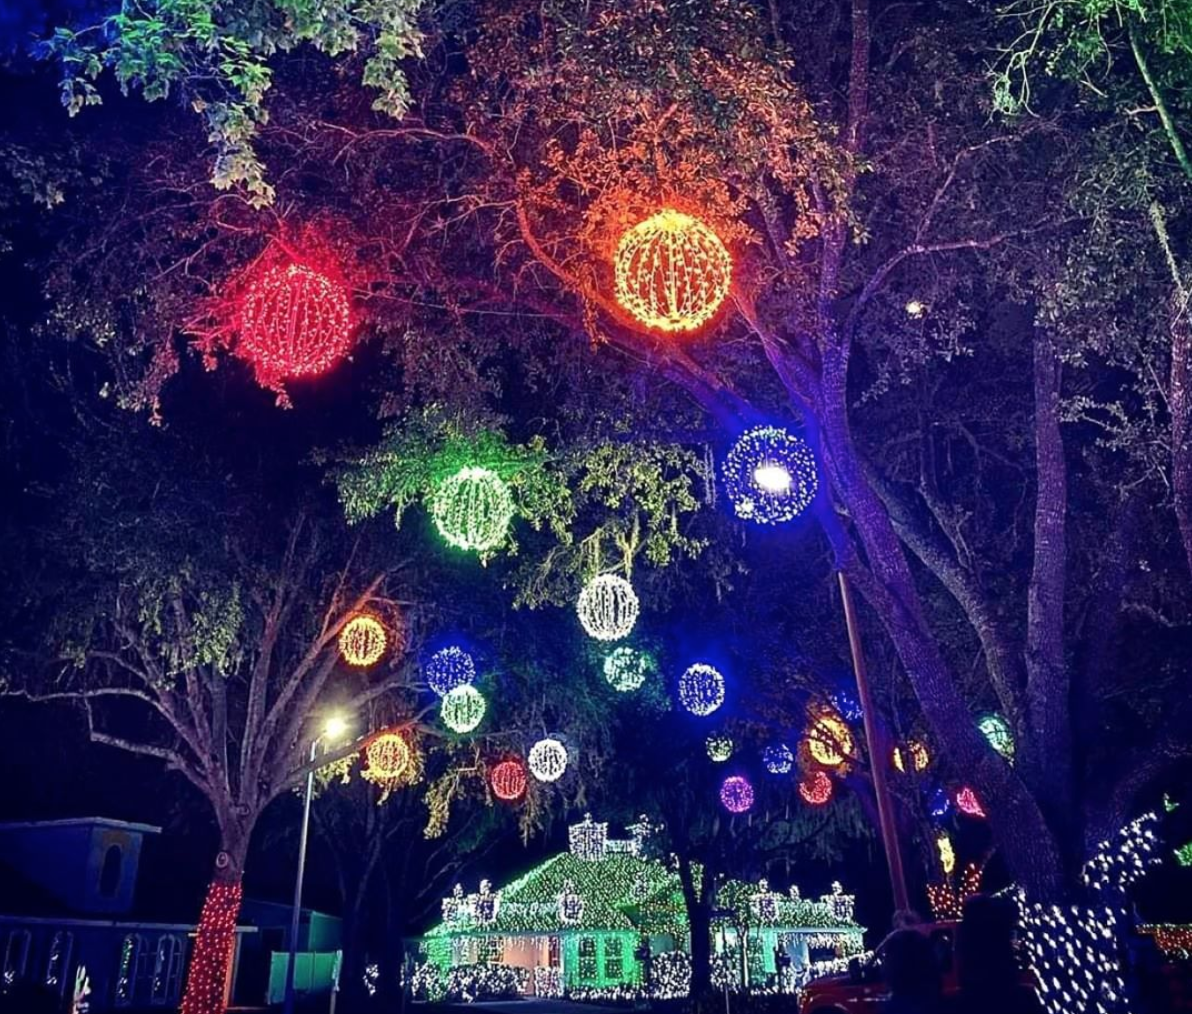 Orlando Christmas Lights: image of Give Kids the World decorated in Christmas lights for the new event, Night of a Million Lights this holiday season